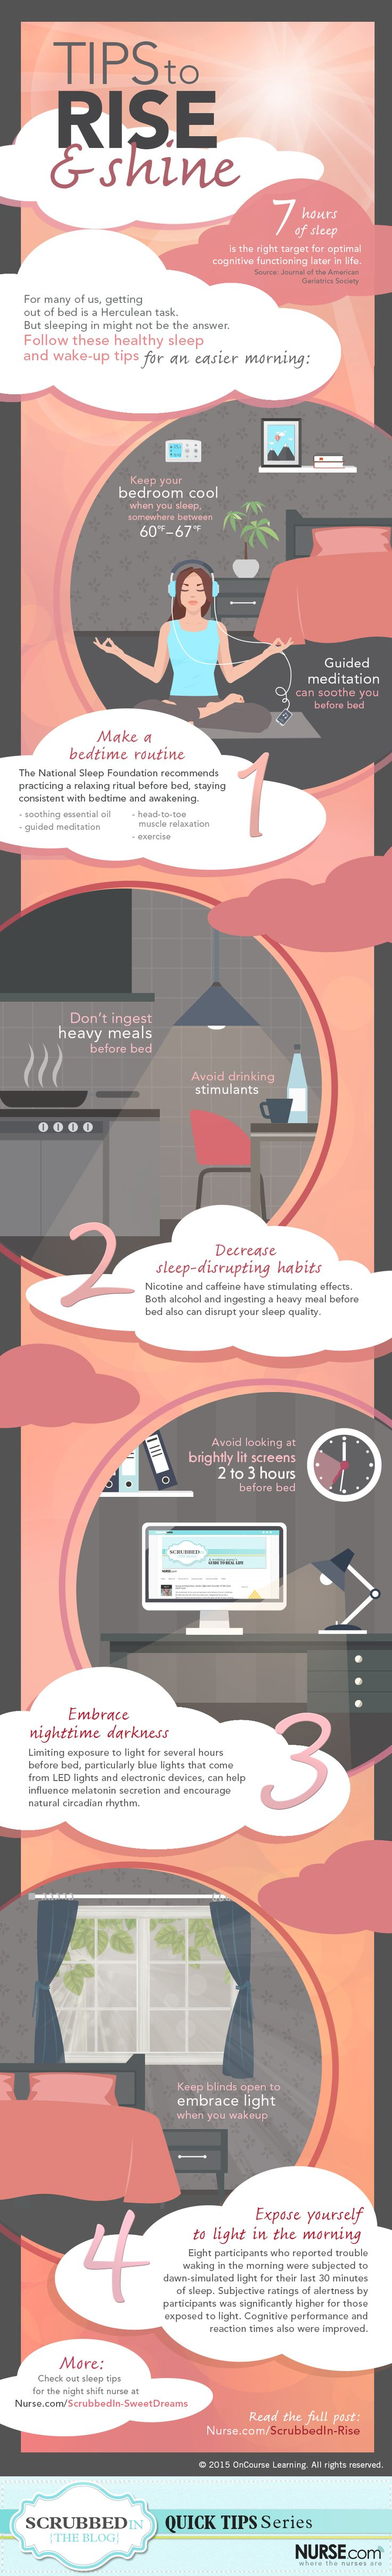 Out of bed, sleepyhead! Read & share our infographic with tips to make the most of your ZZZs.